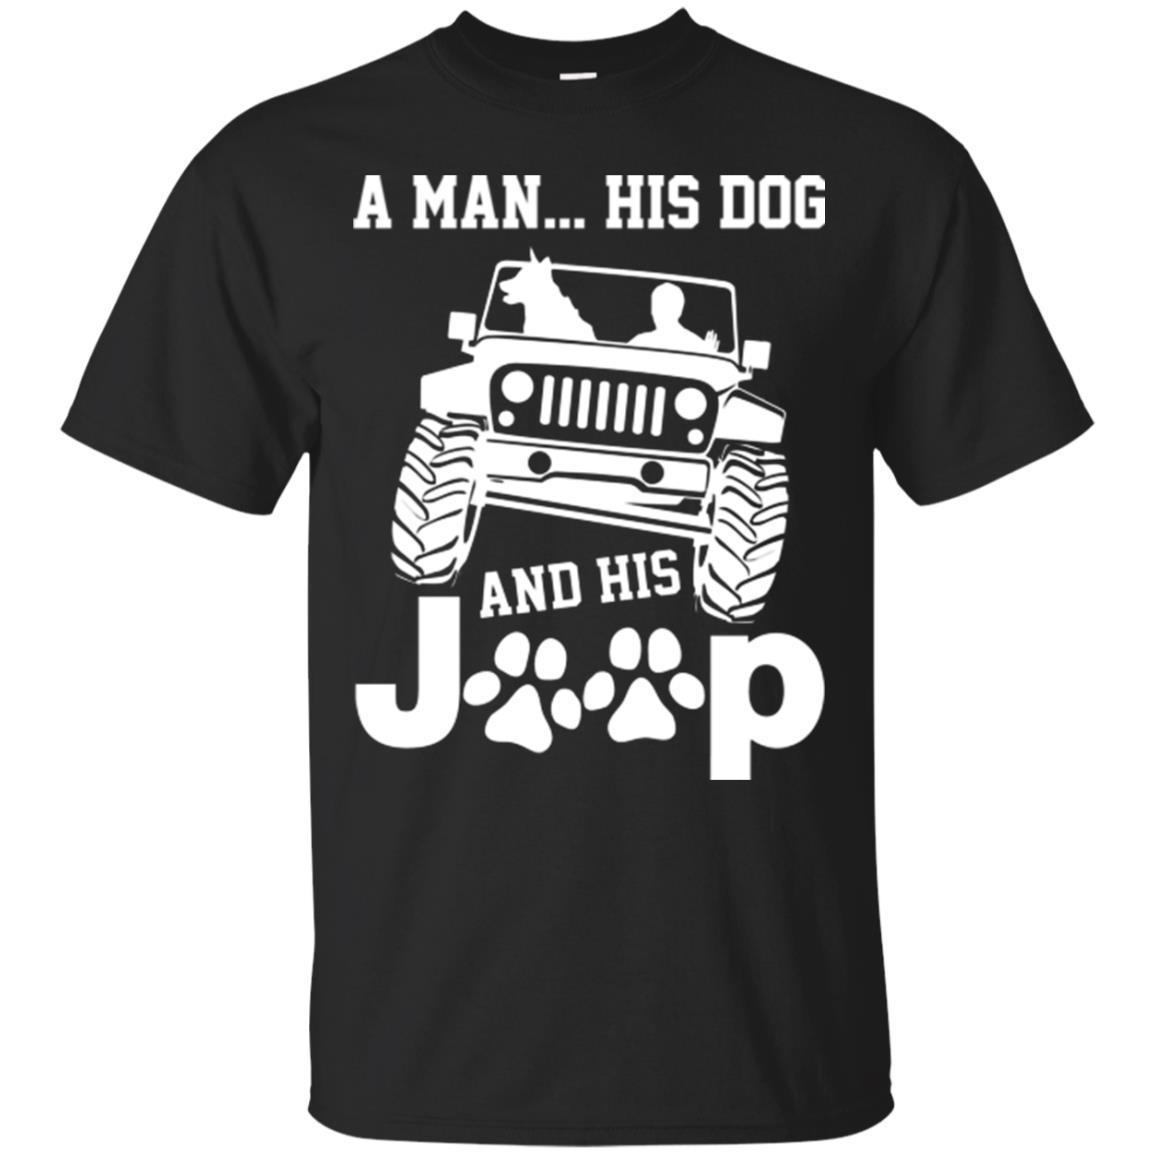 Jeep T Shirts For Women Photo Album Best Fashion Trends And Models Womenamp039s Retro 3 4 Sleeve Denim Slim Bubble Shirt Dress A Man His Dog Funny Gift Tee My